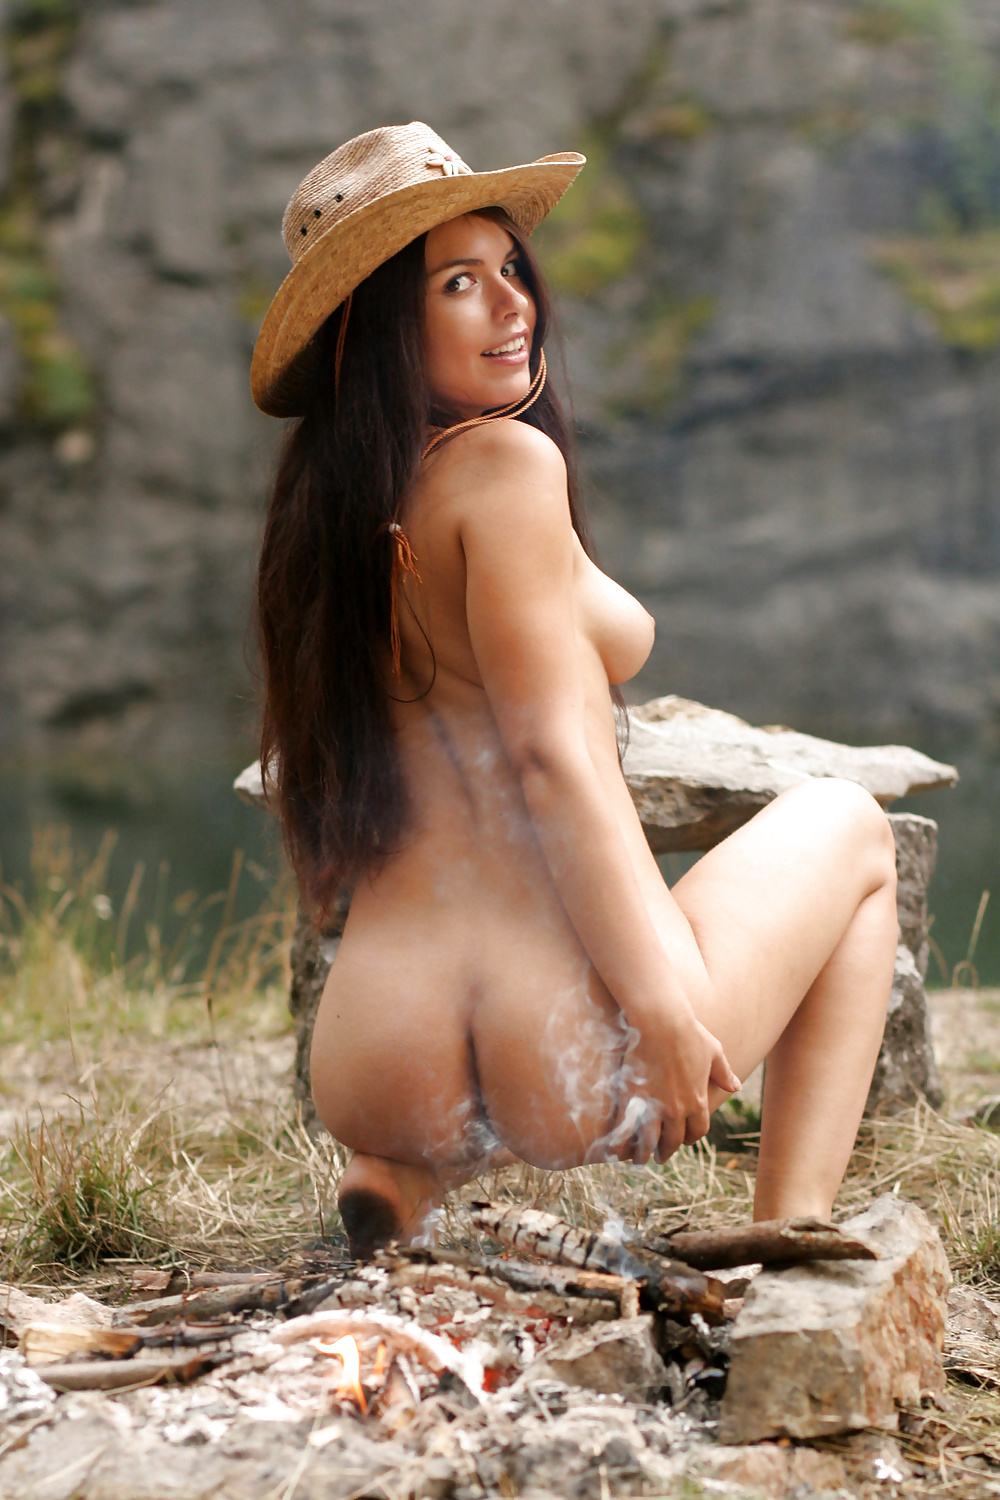 Naughty country girls naked hd